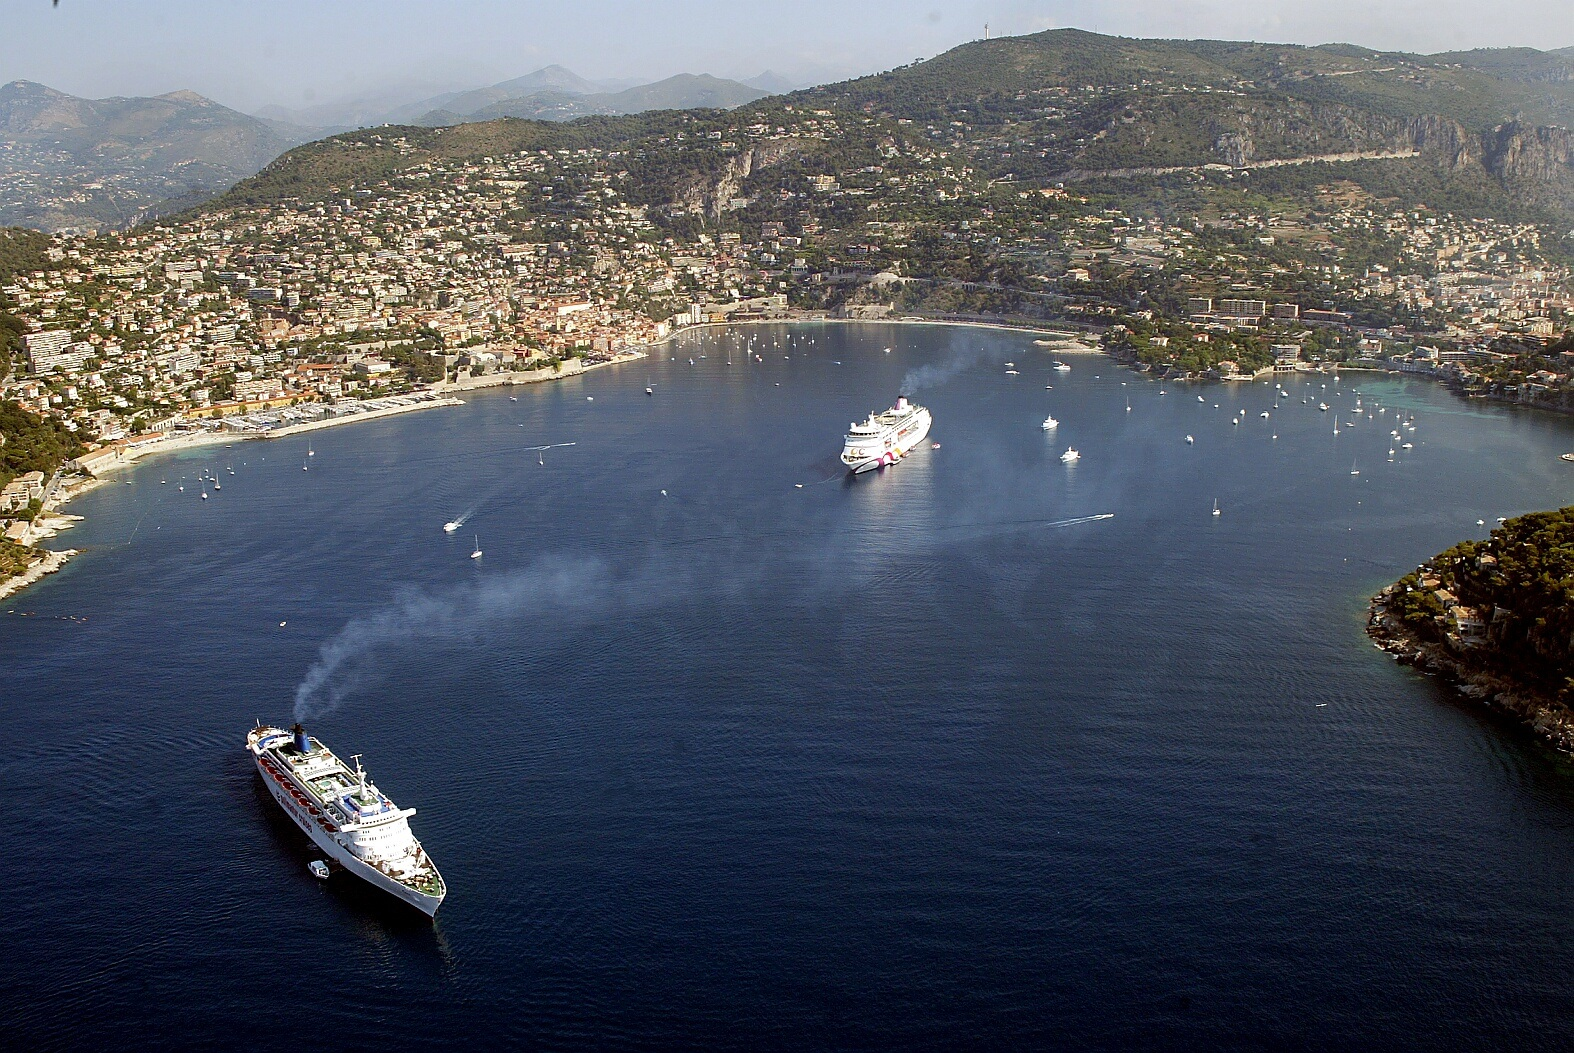 Getting to Villefranche